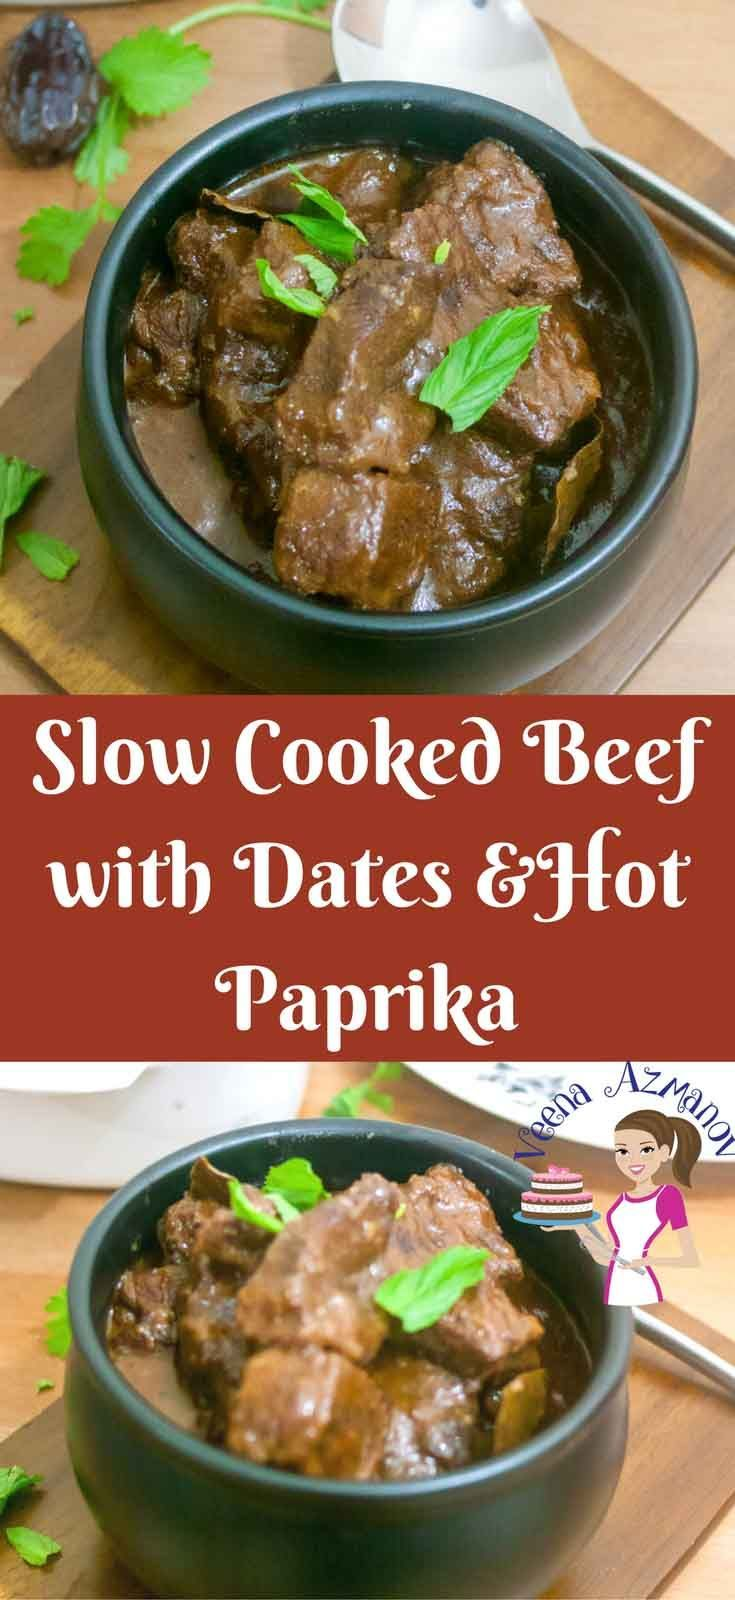 This Moroccan Slow Cooked Beef With Dates Is Easy Simple Tender And Melts In The Mouth It Has A Hand Easy Slow Cooker Recipes Moroccan Beef Slow Cooked Beef